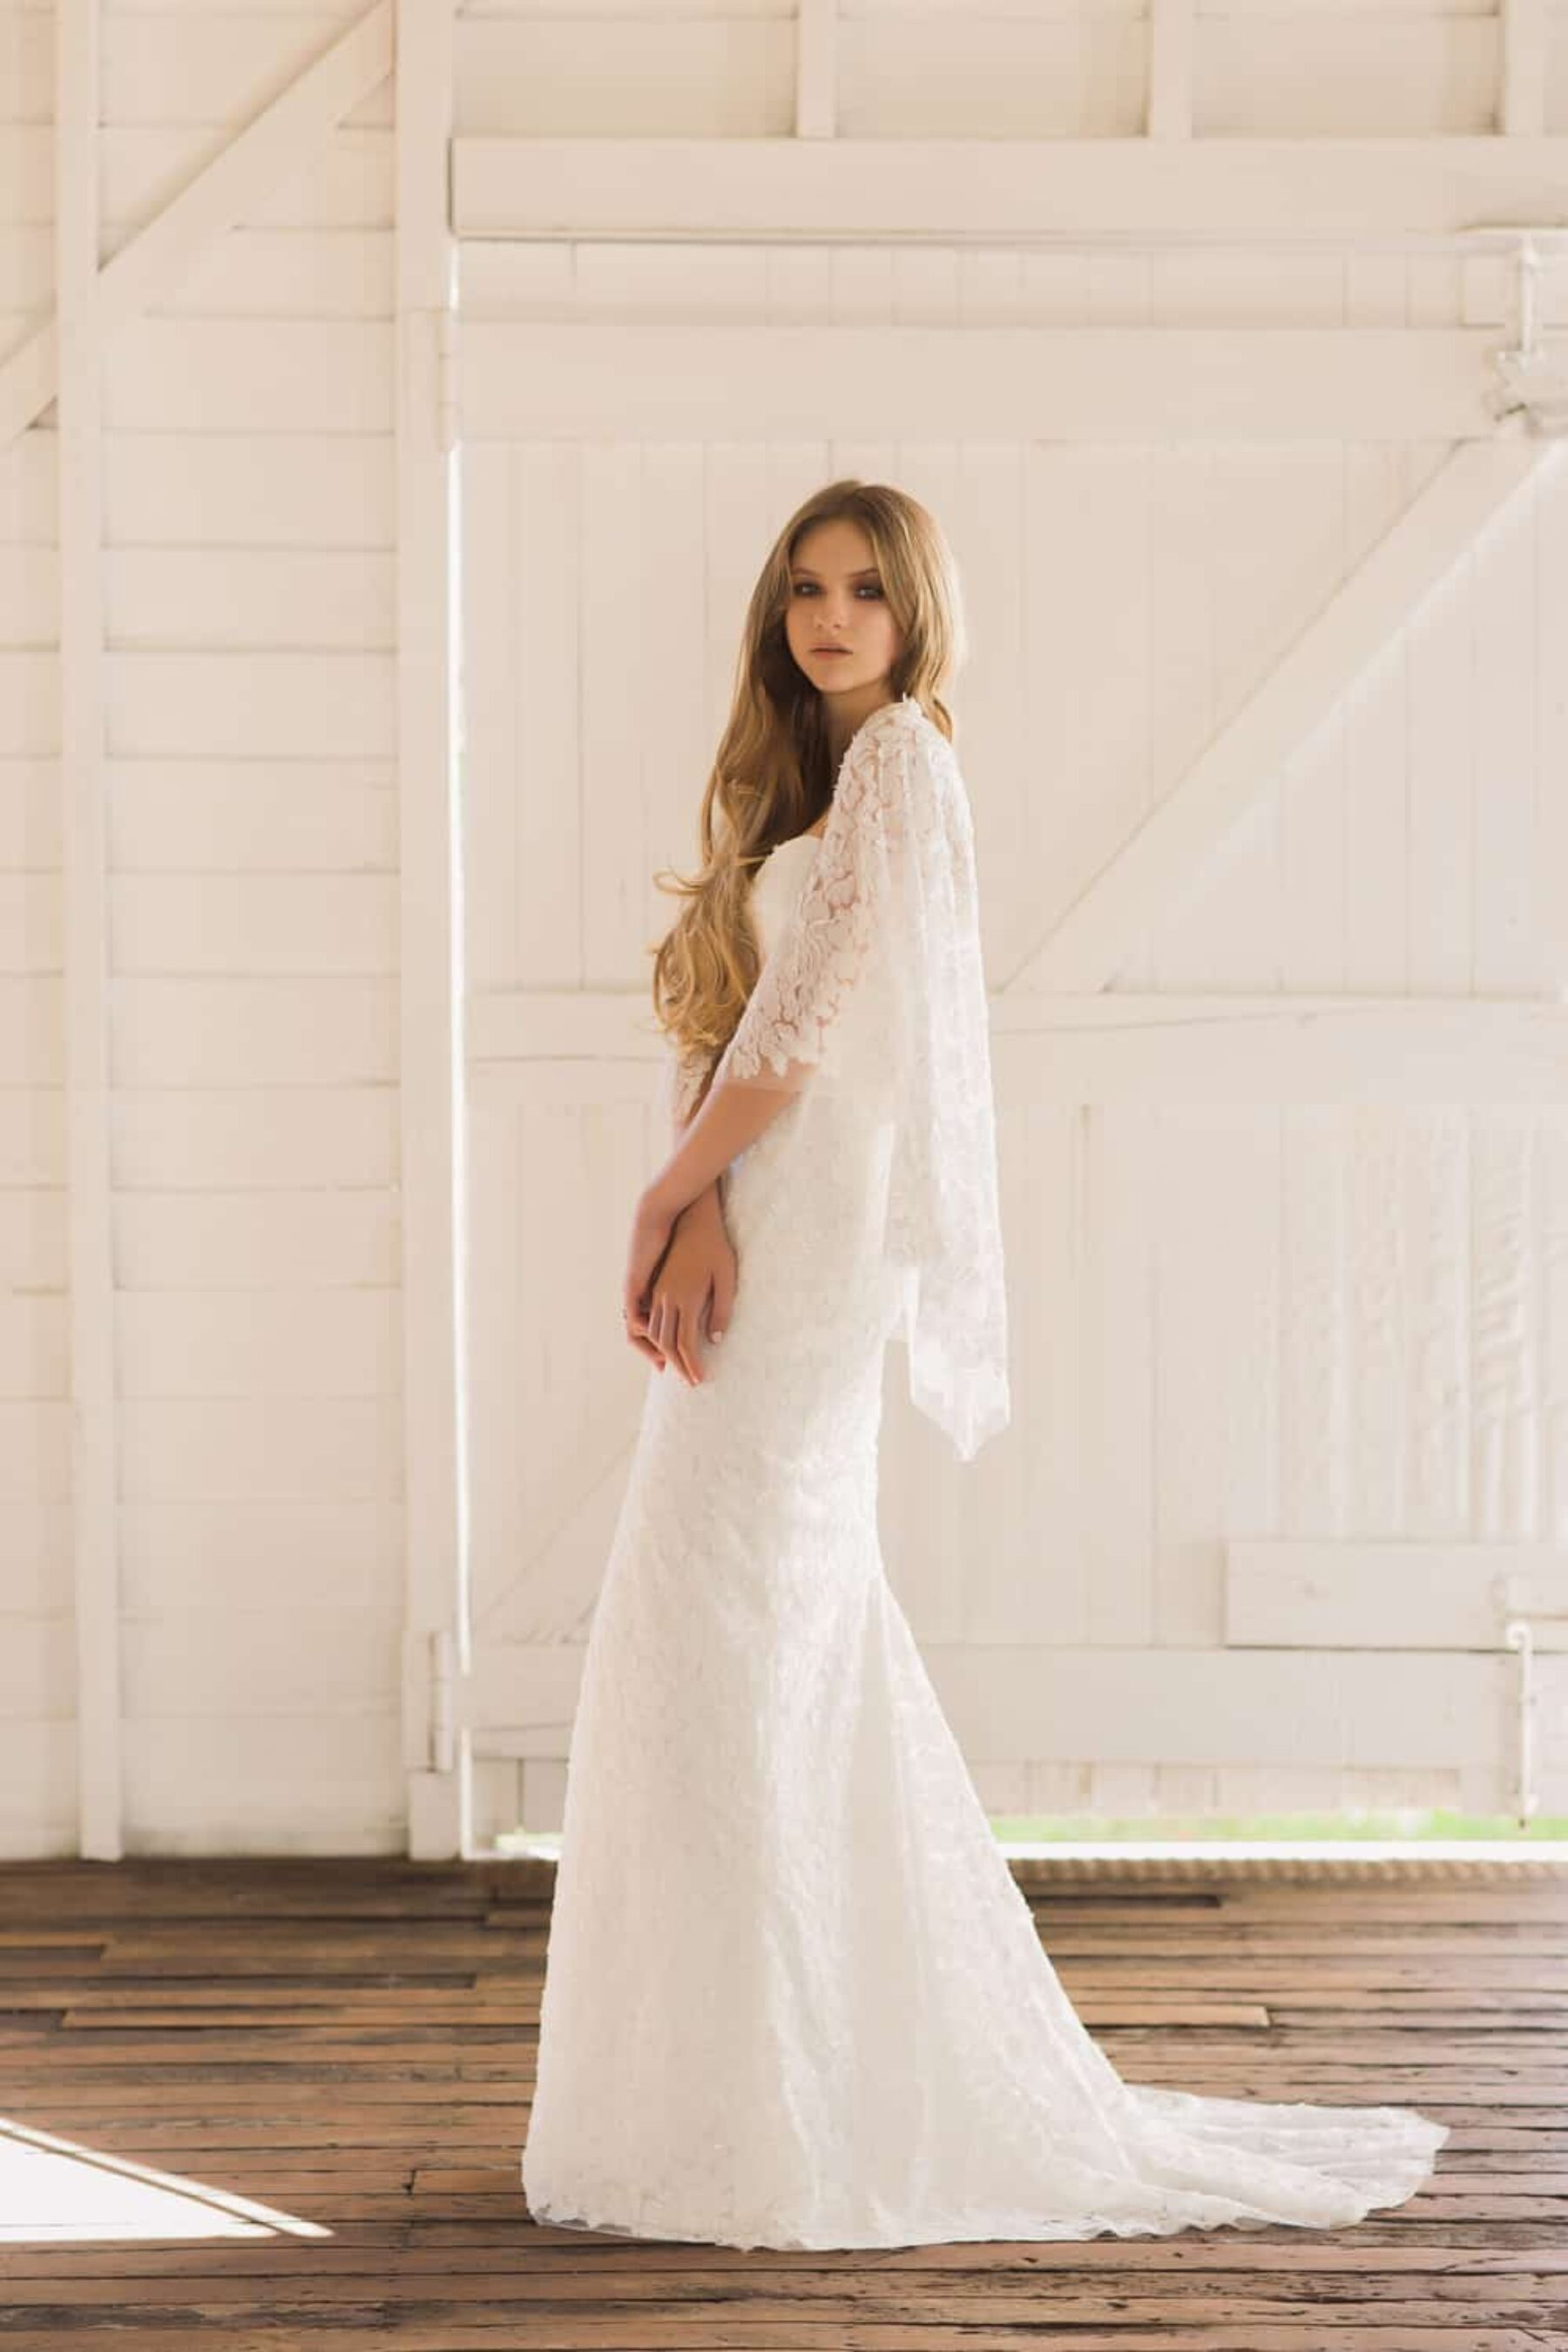 2017 bridal collection from Brisbane designer Jennifer Gifford